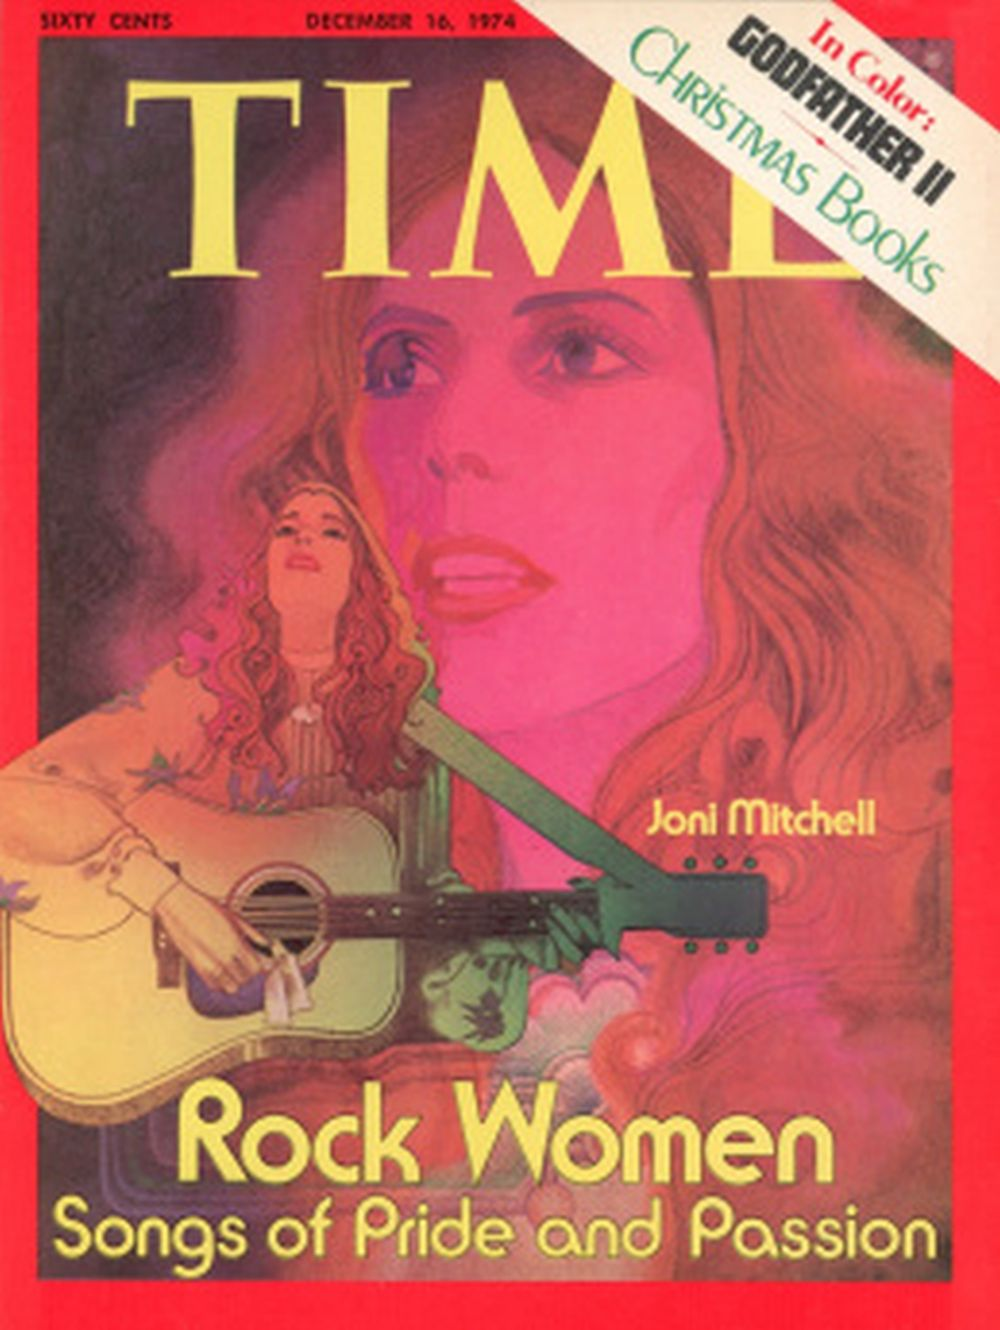 Joni mitchell library safaris to the heart of all that jazz december 16 1974 issue of time magazine hexwebz Gallery